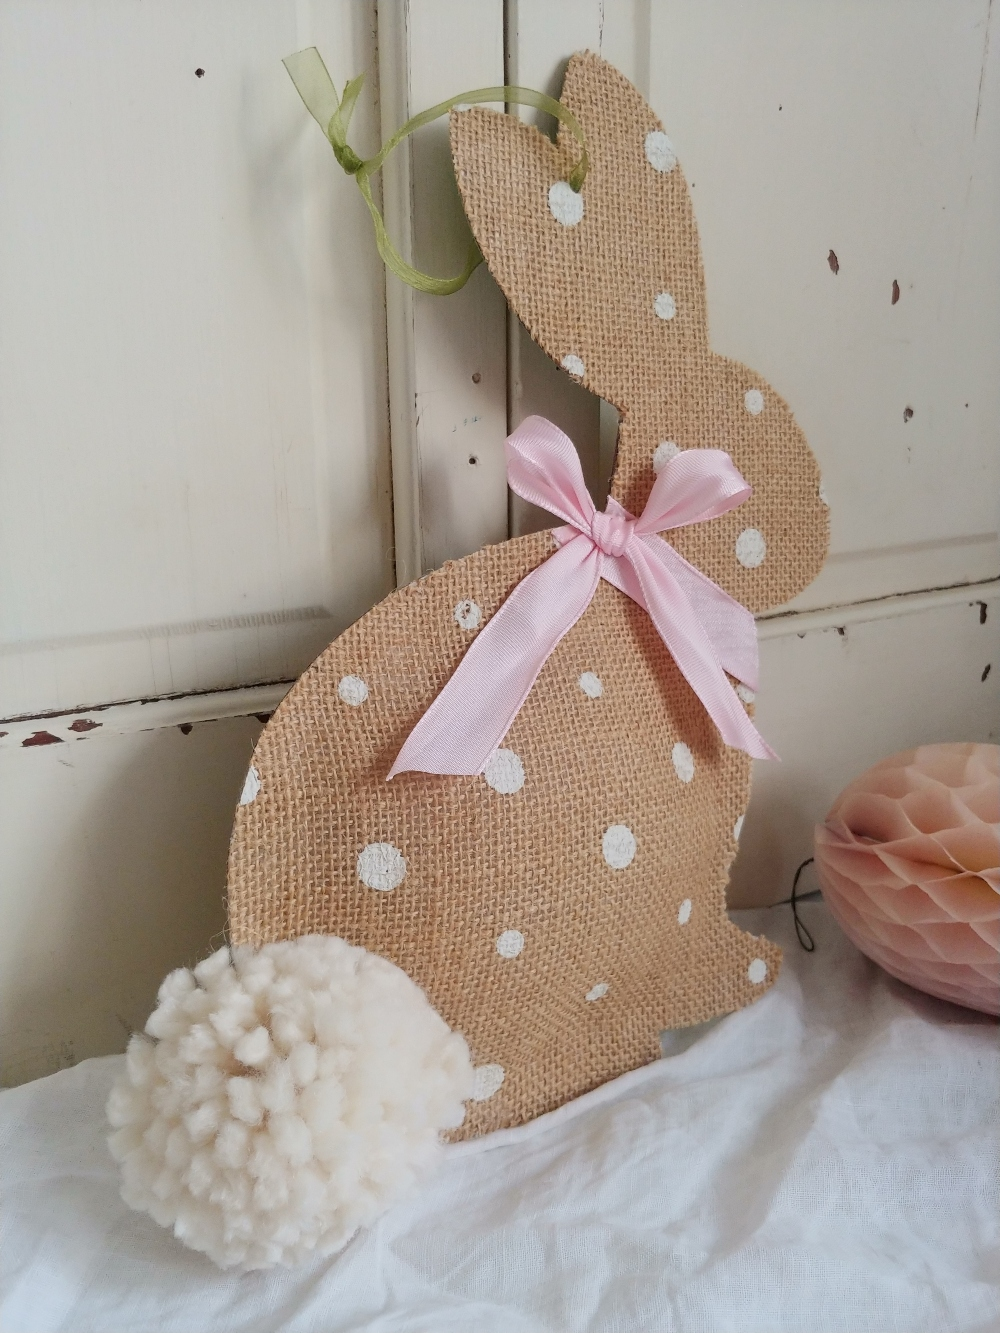 Burlap bunny decor